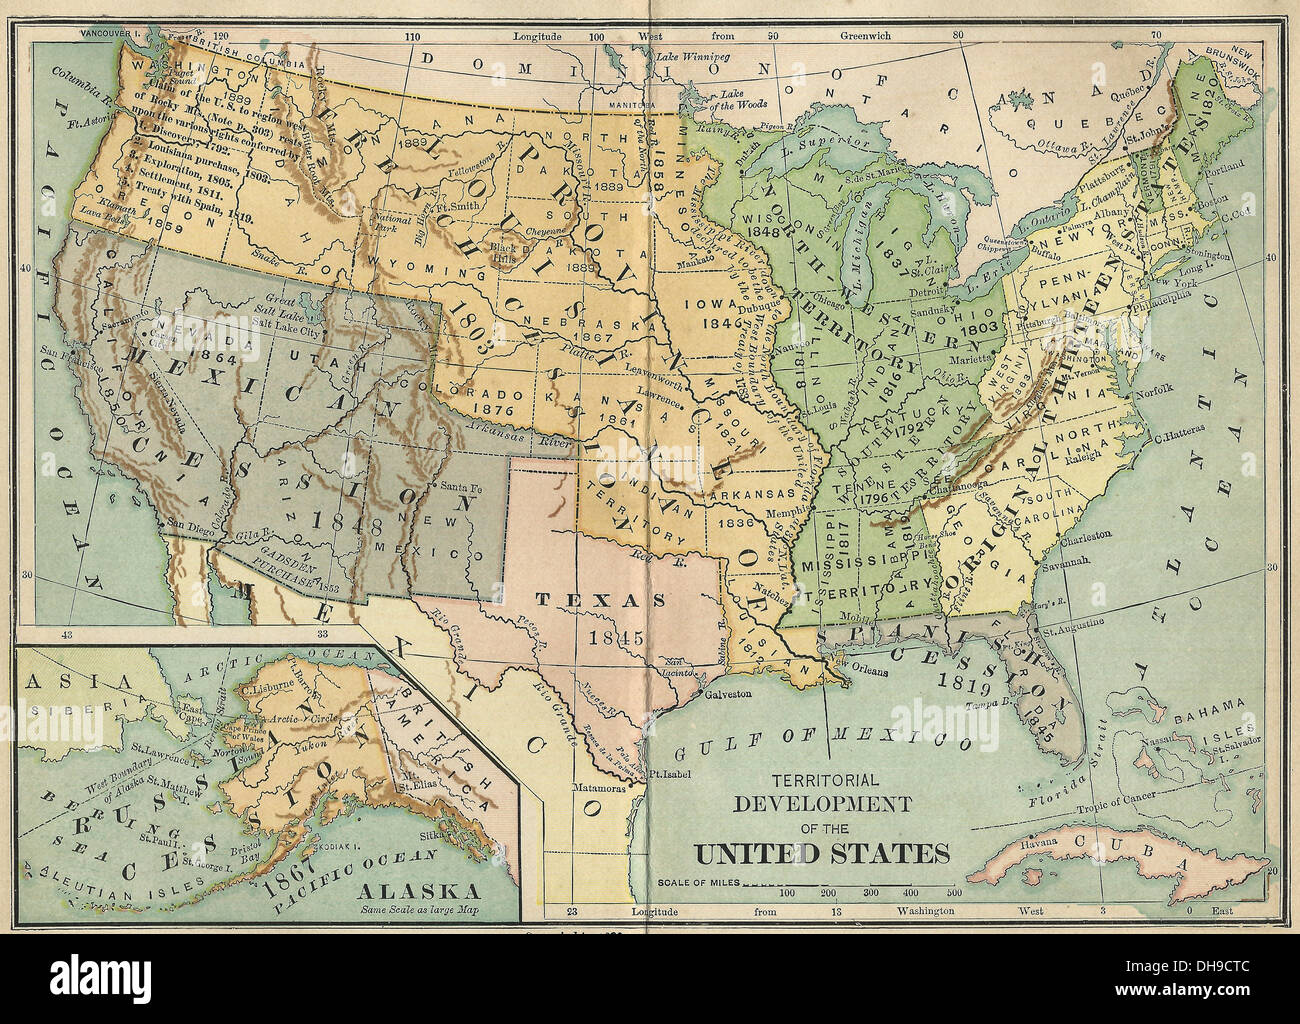 Louisiana Purchase Map Stock Photos & Louisiana Purchase Map Stock ...